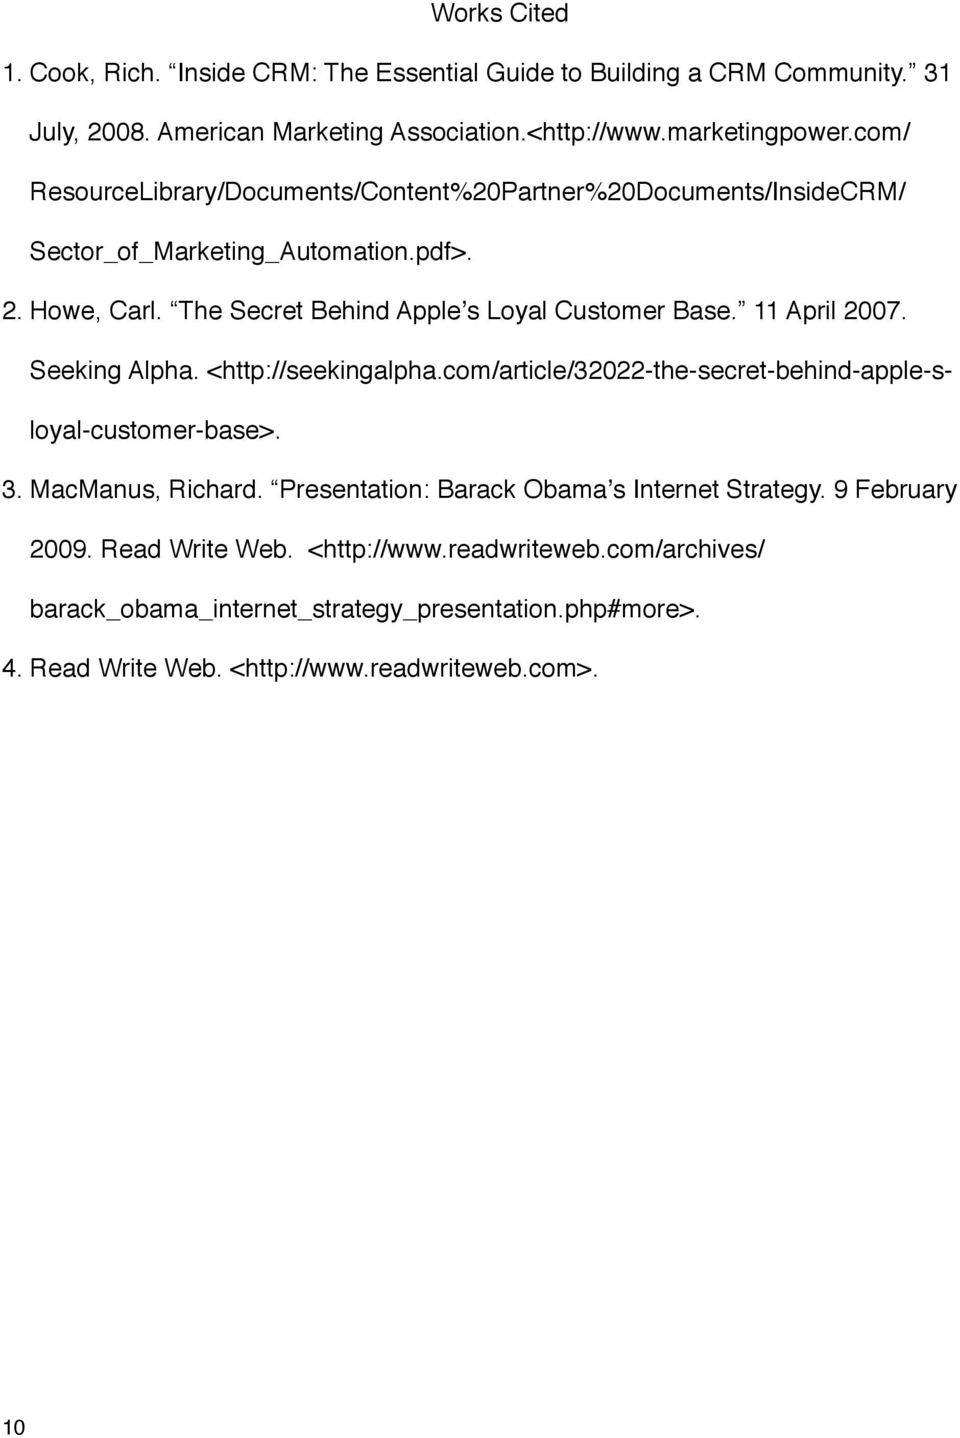 11 April 2007. Seeking Alpha. <http://seekingalpha.com/article/32022-the-secret-behind-apple-sloyal-customer-base>. 3. MacManus, Richard.